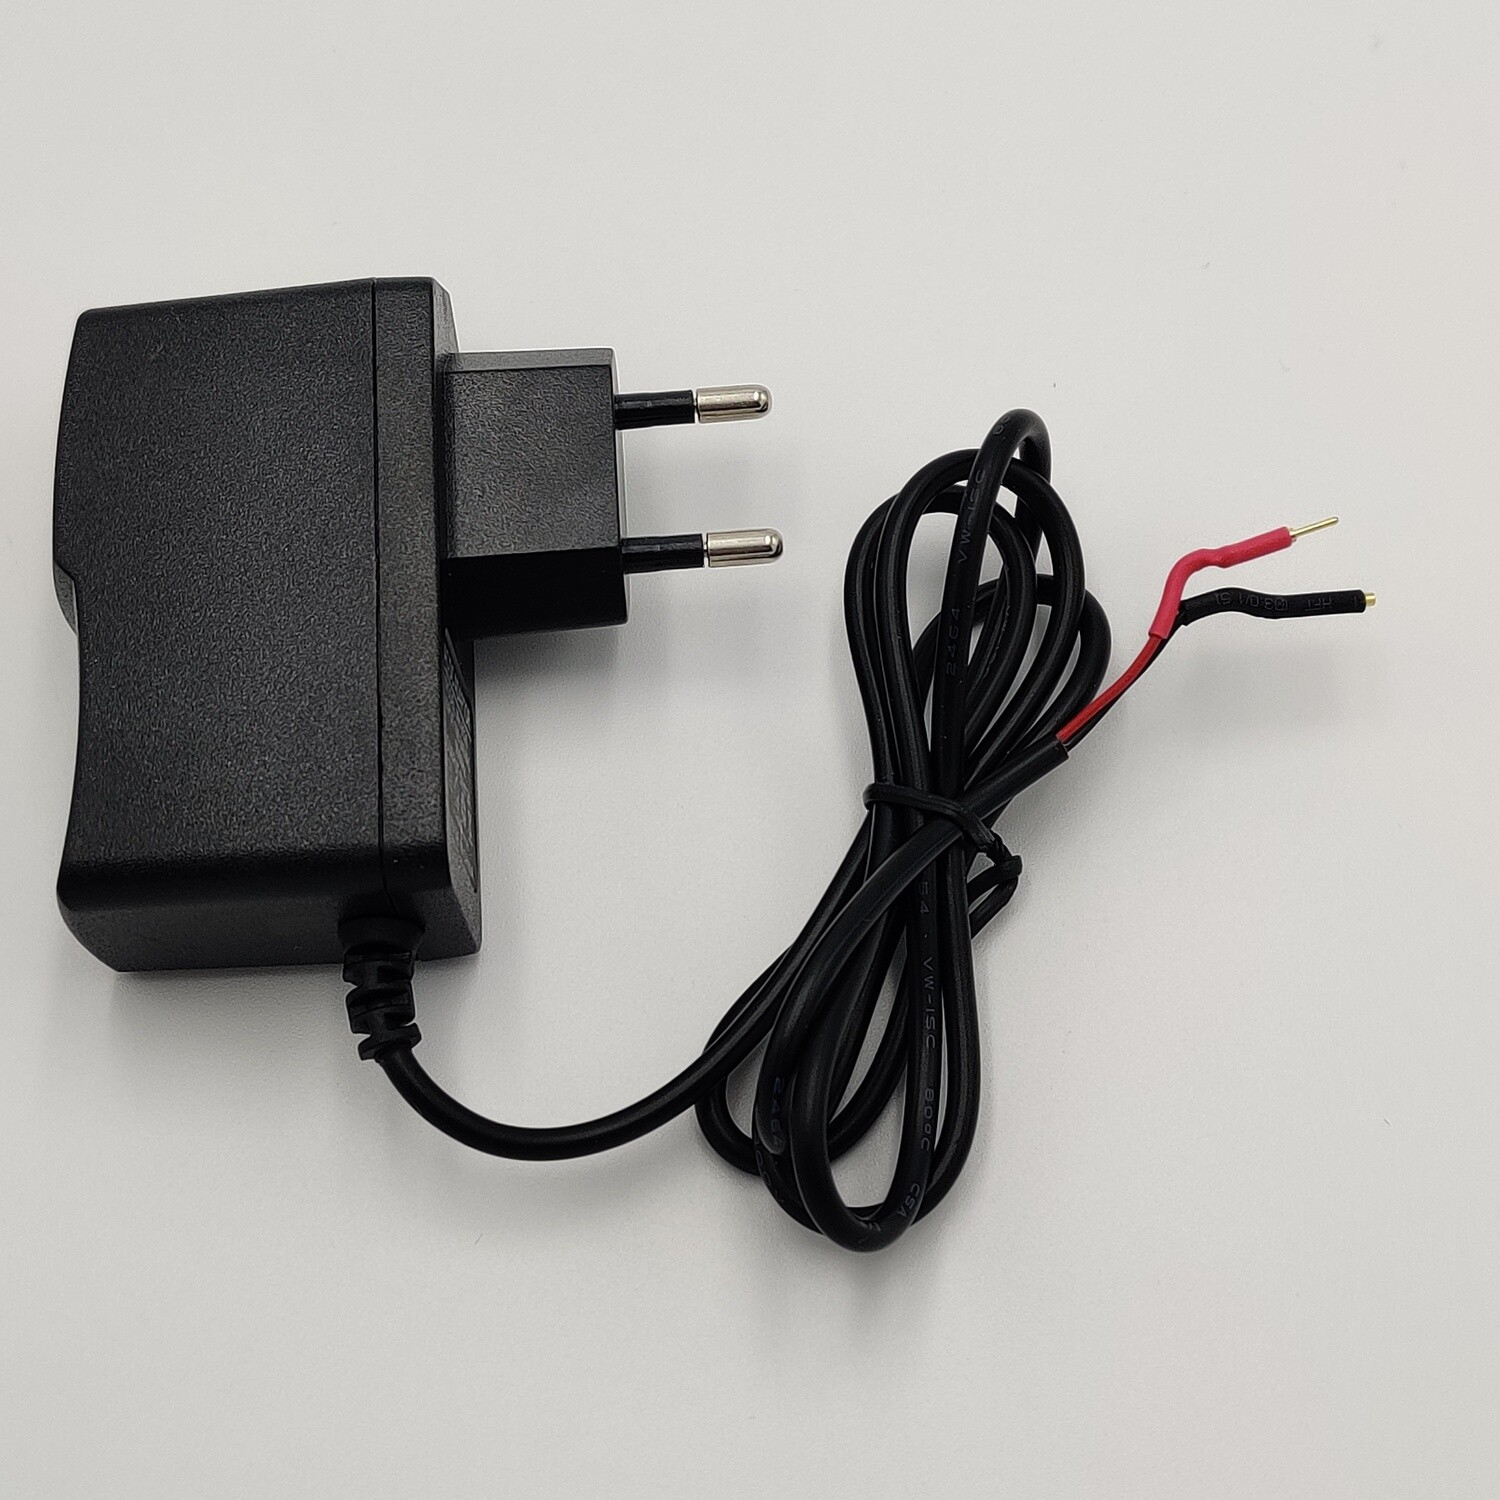 AC/DC power adaptor for Europe